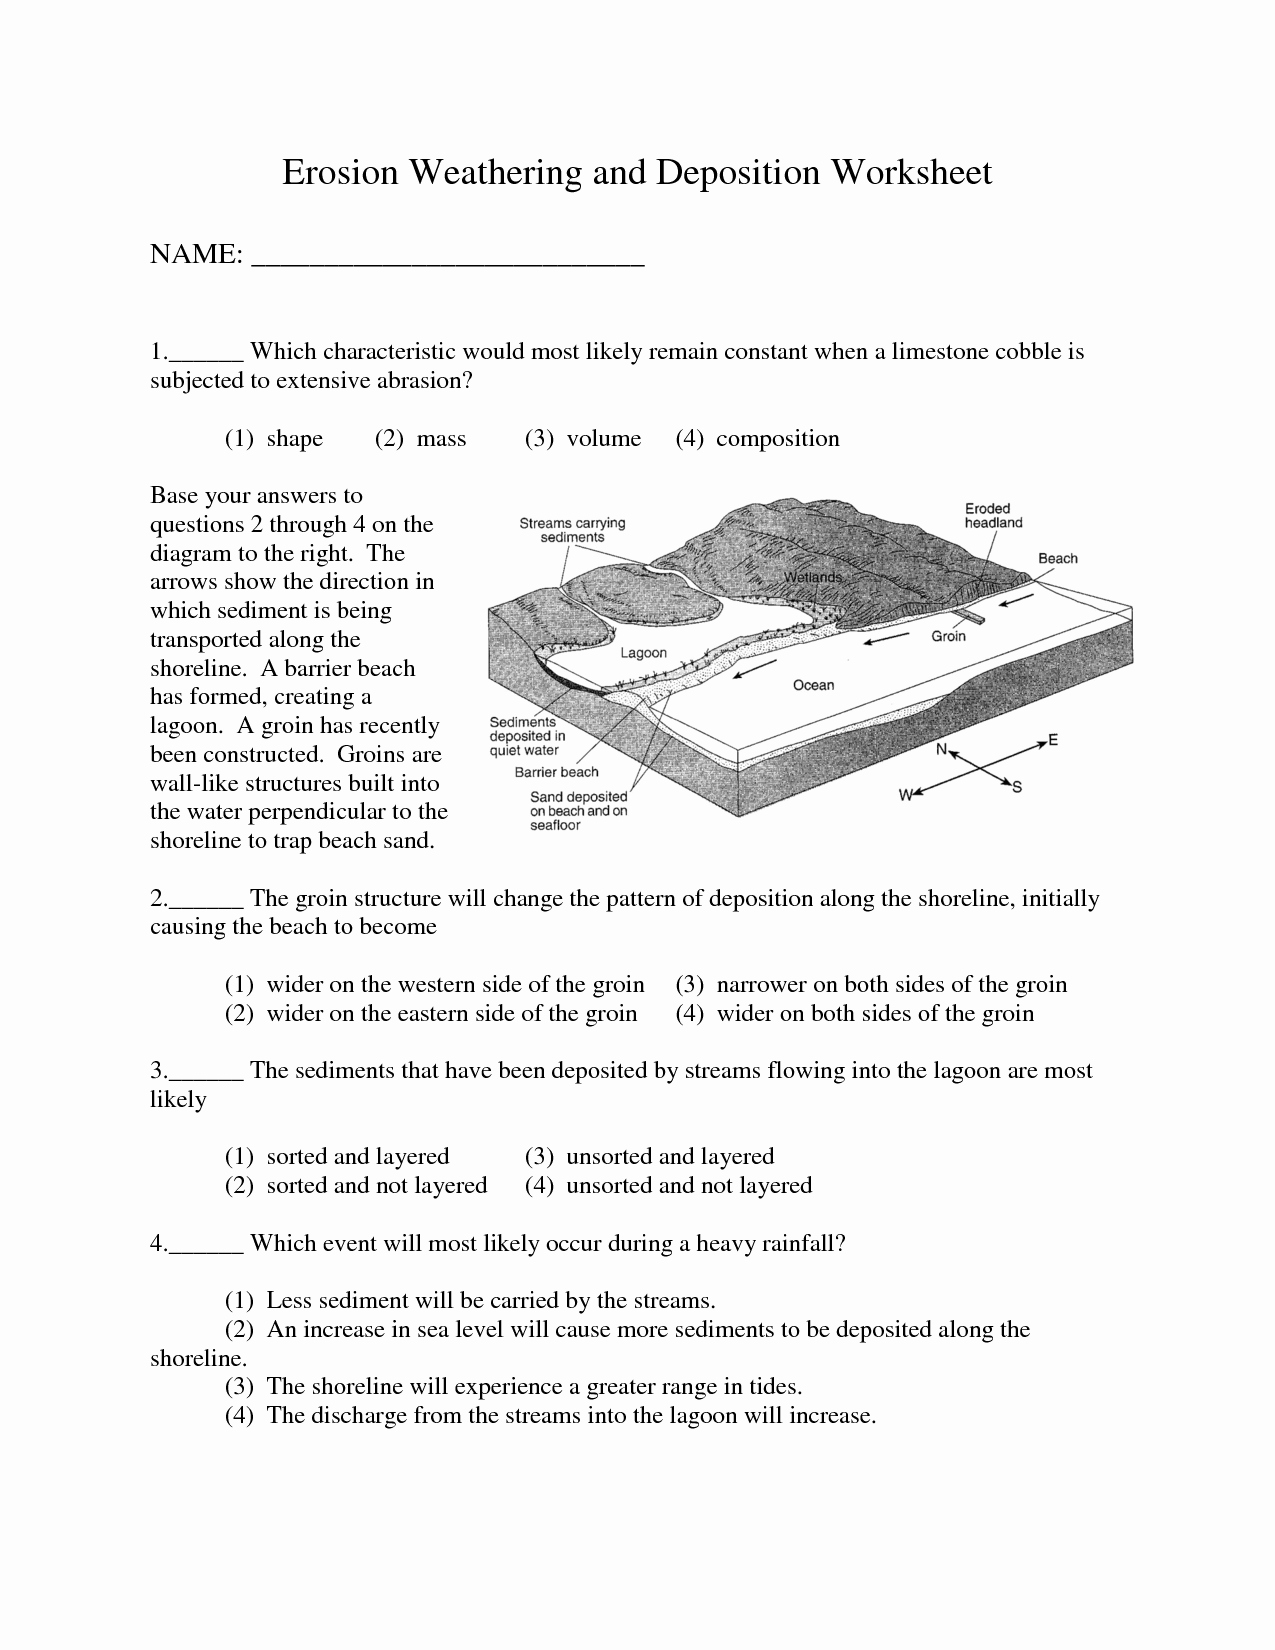 Erosion and Deposition Worksheet Beautiful 16 Best Of Weathering and Erosion Worksheet